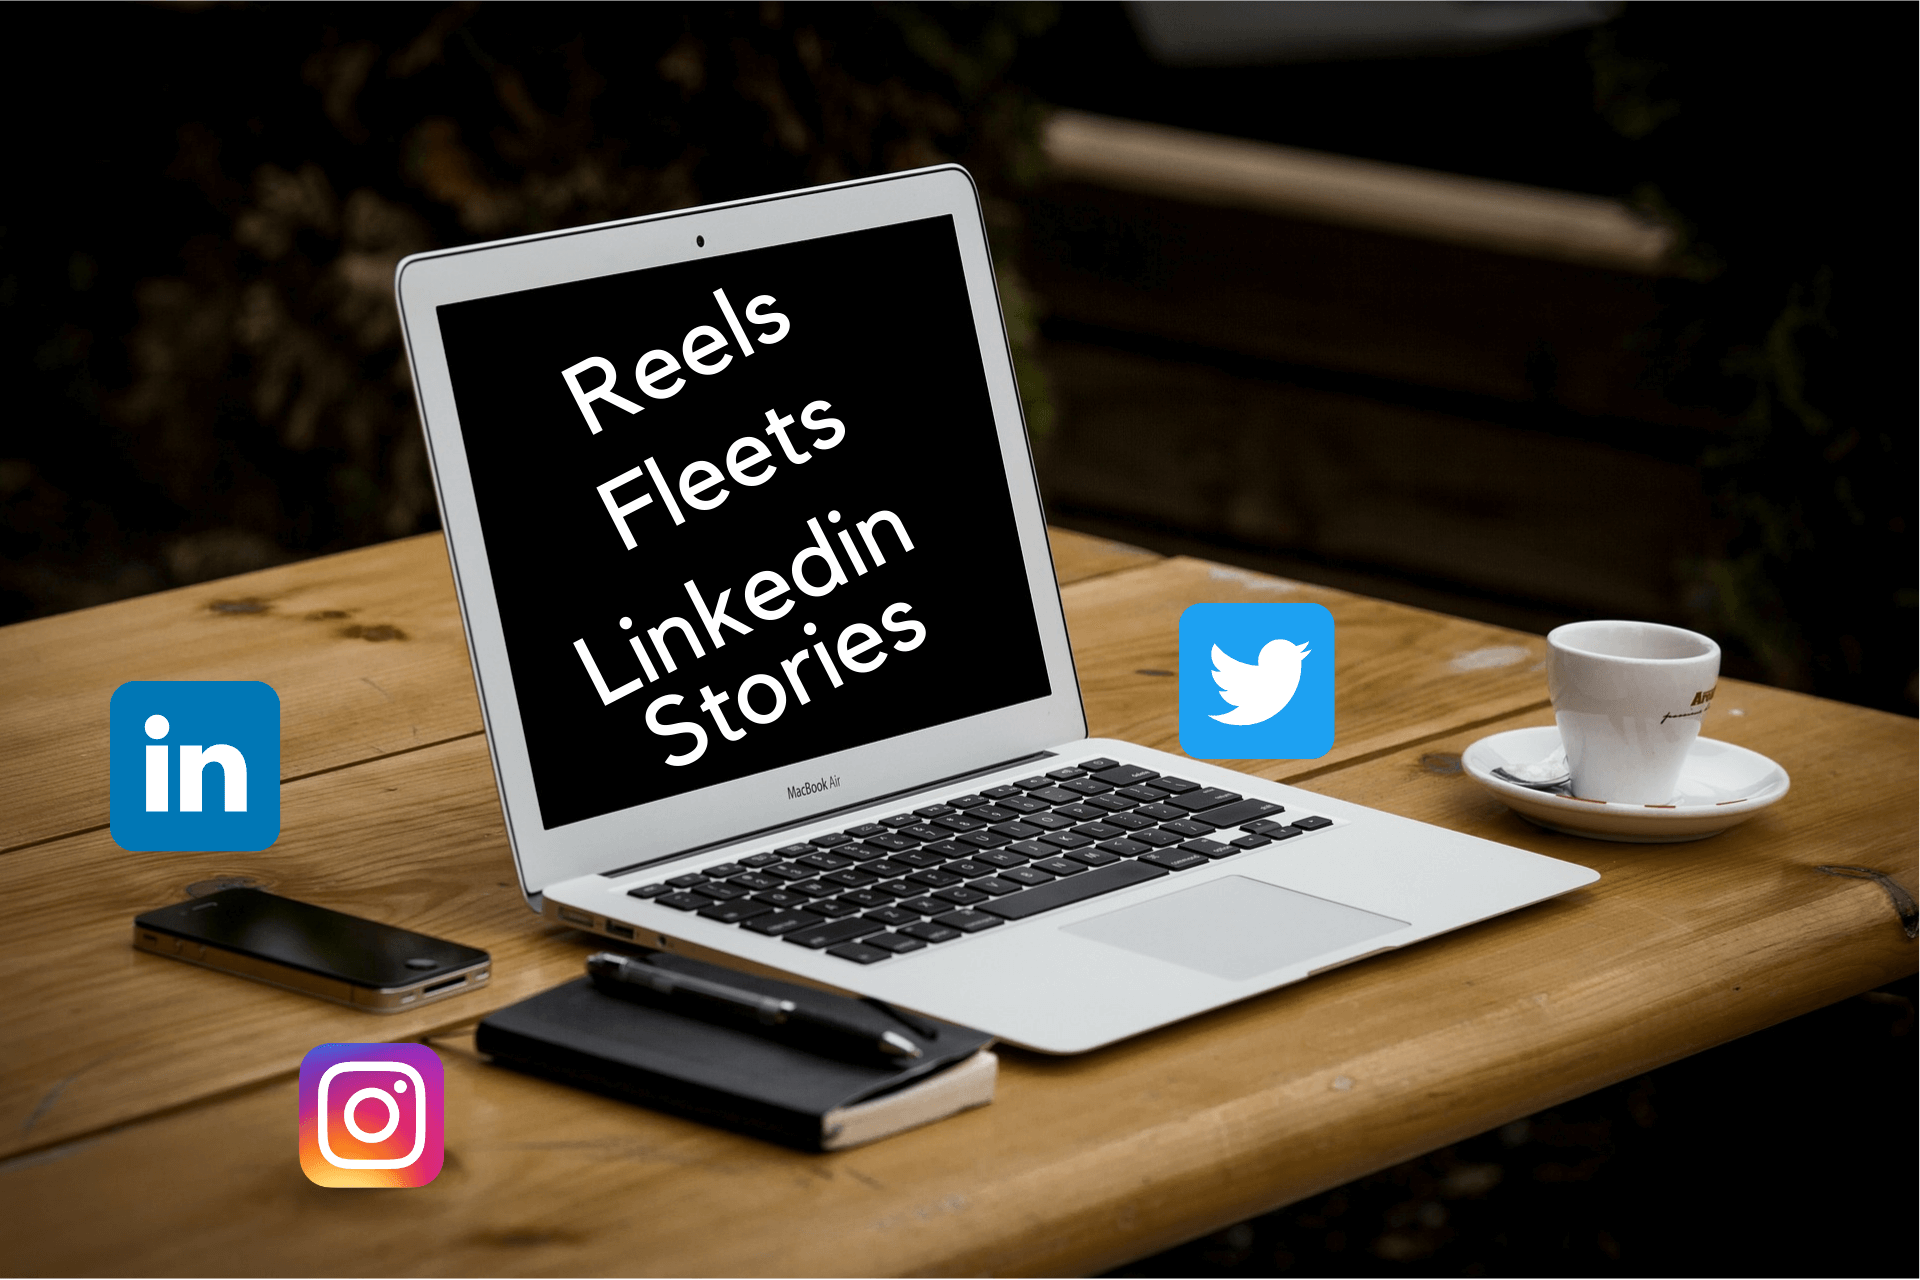 REELS LINKEDIN STORIES FLEETS